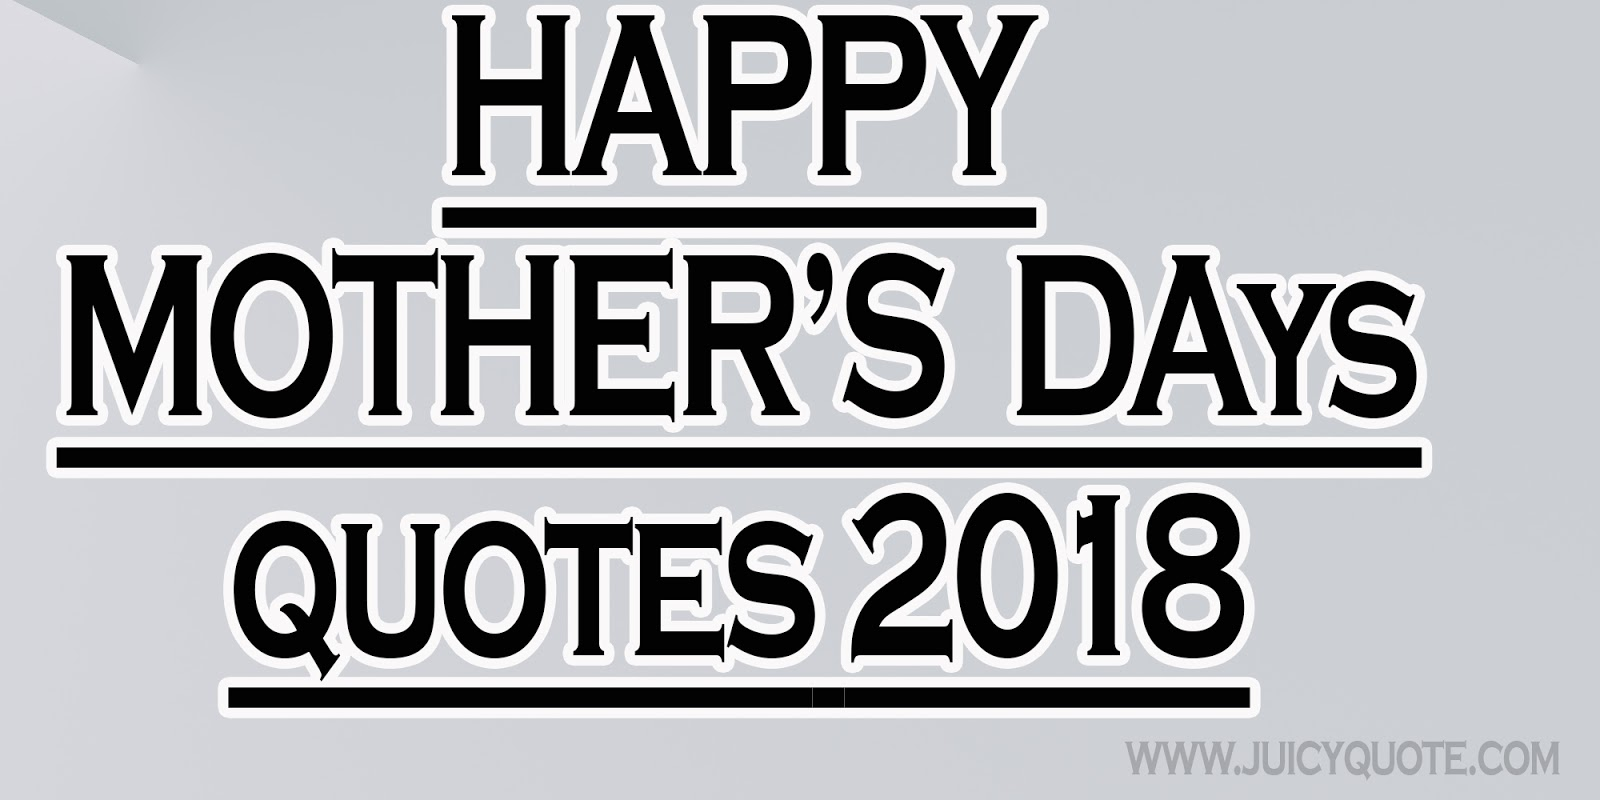 Happy Mothers Day Quotes | Bansuan